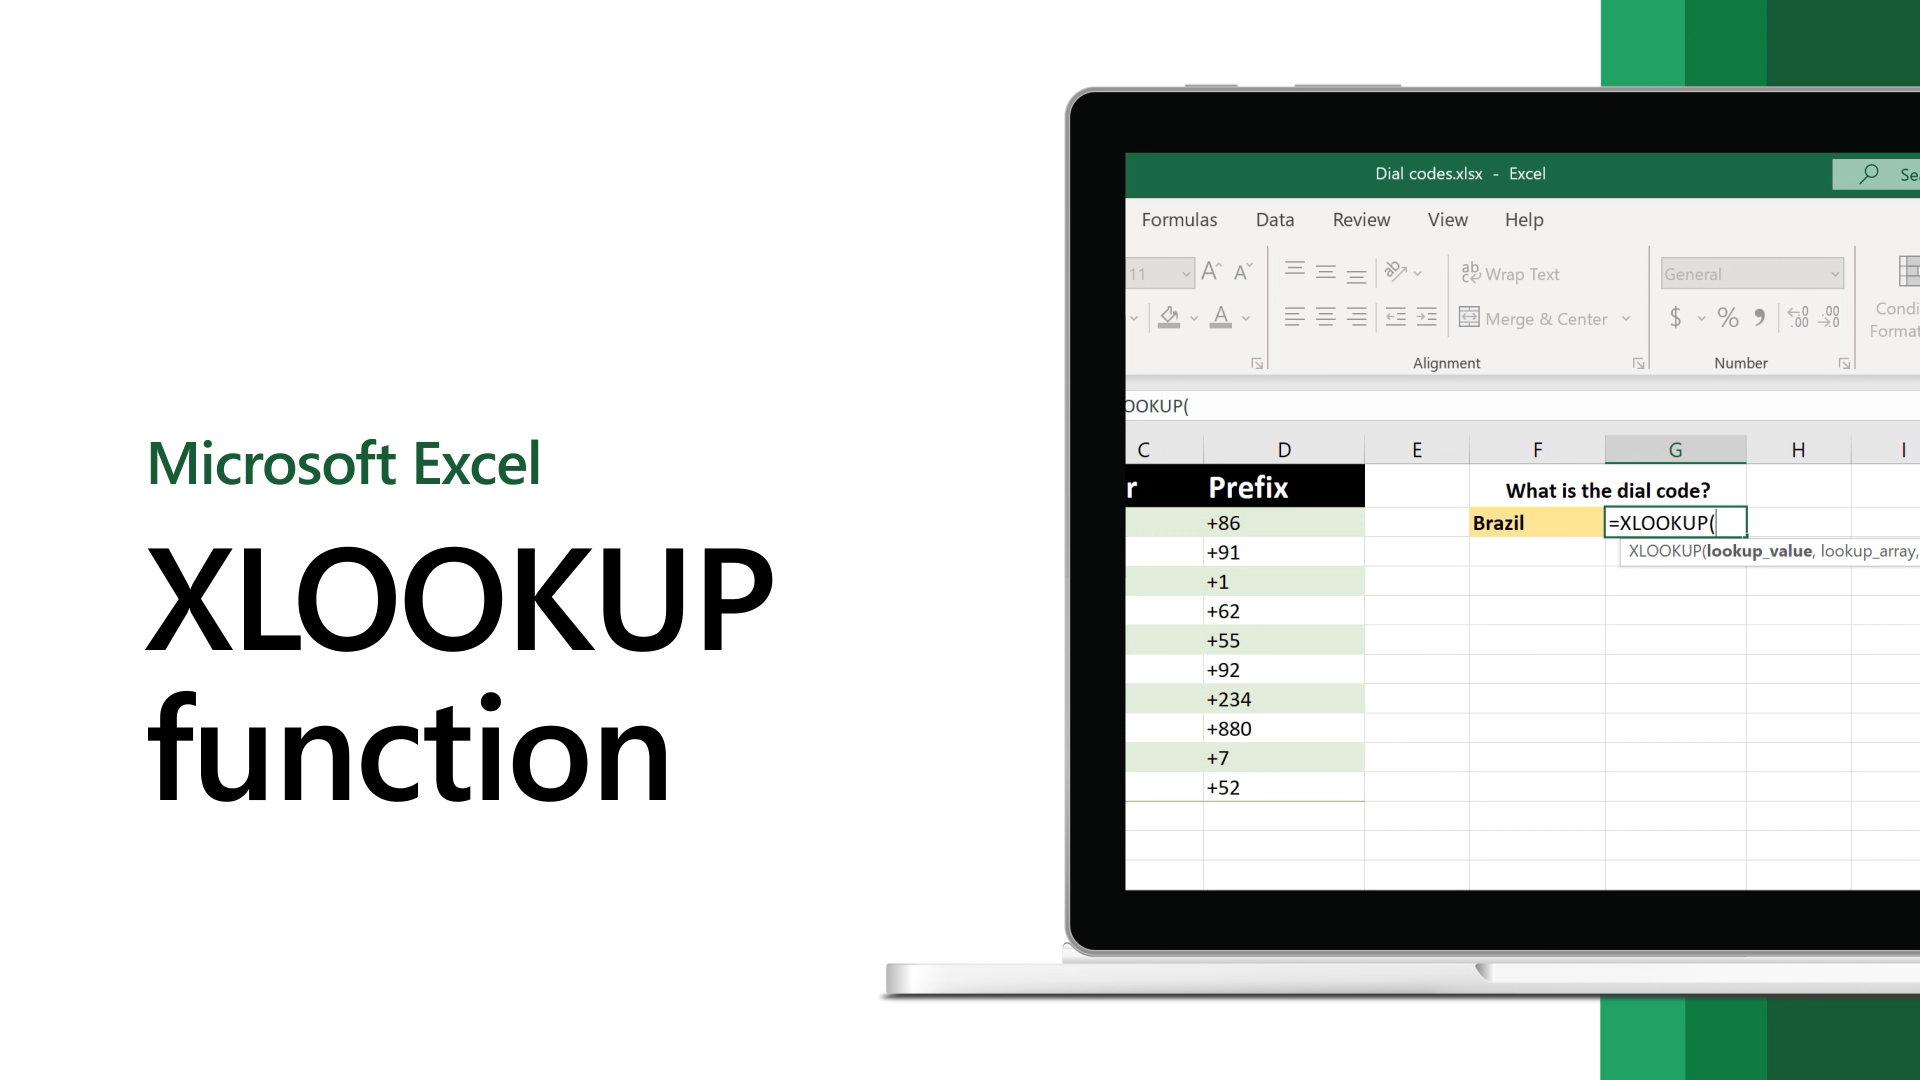 Use the XLOOKUP function